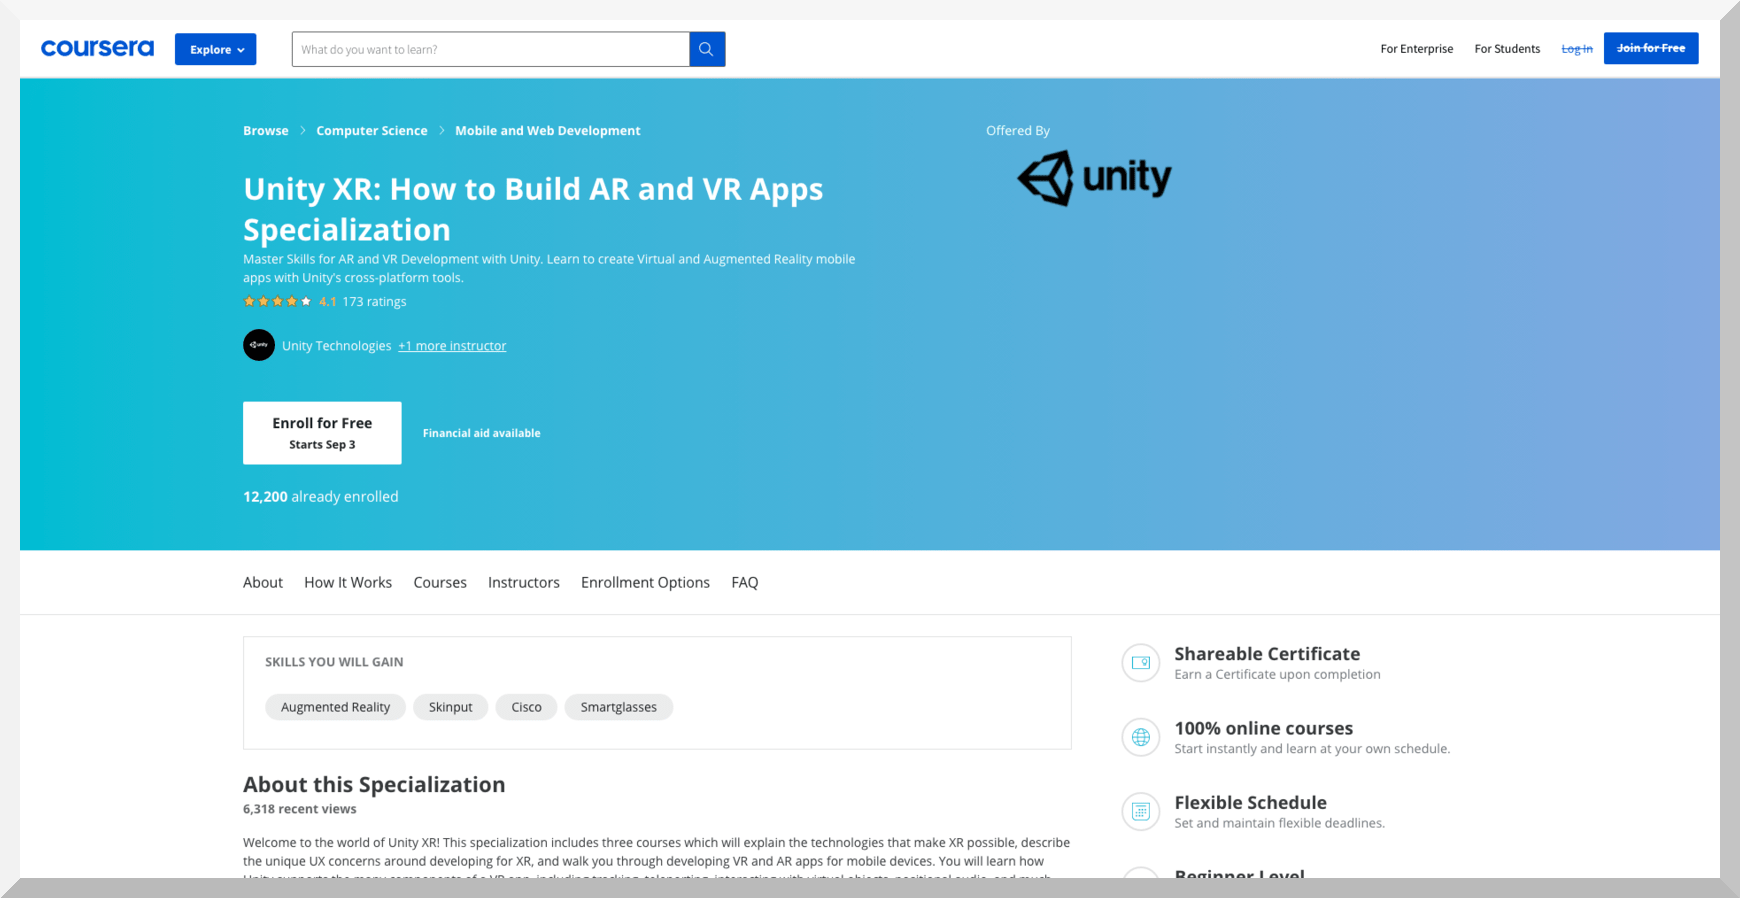 Unity XR- How to Build AR and VR Apps Specialization – Coursera